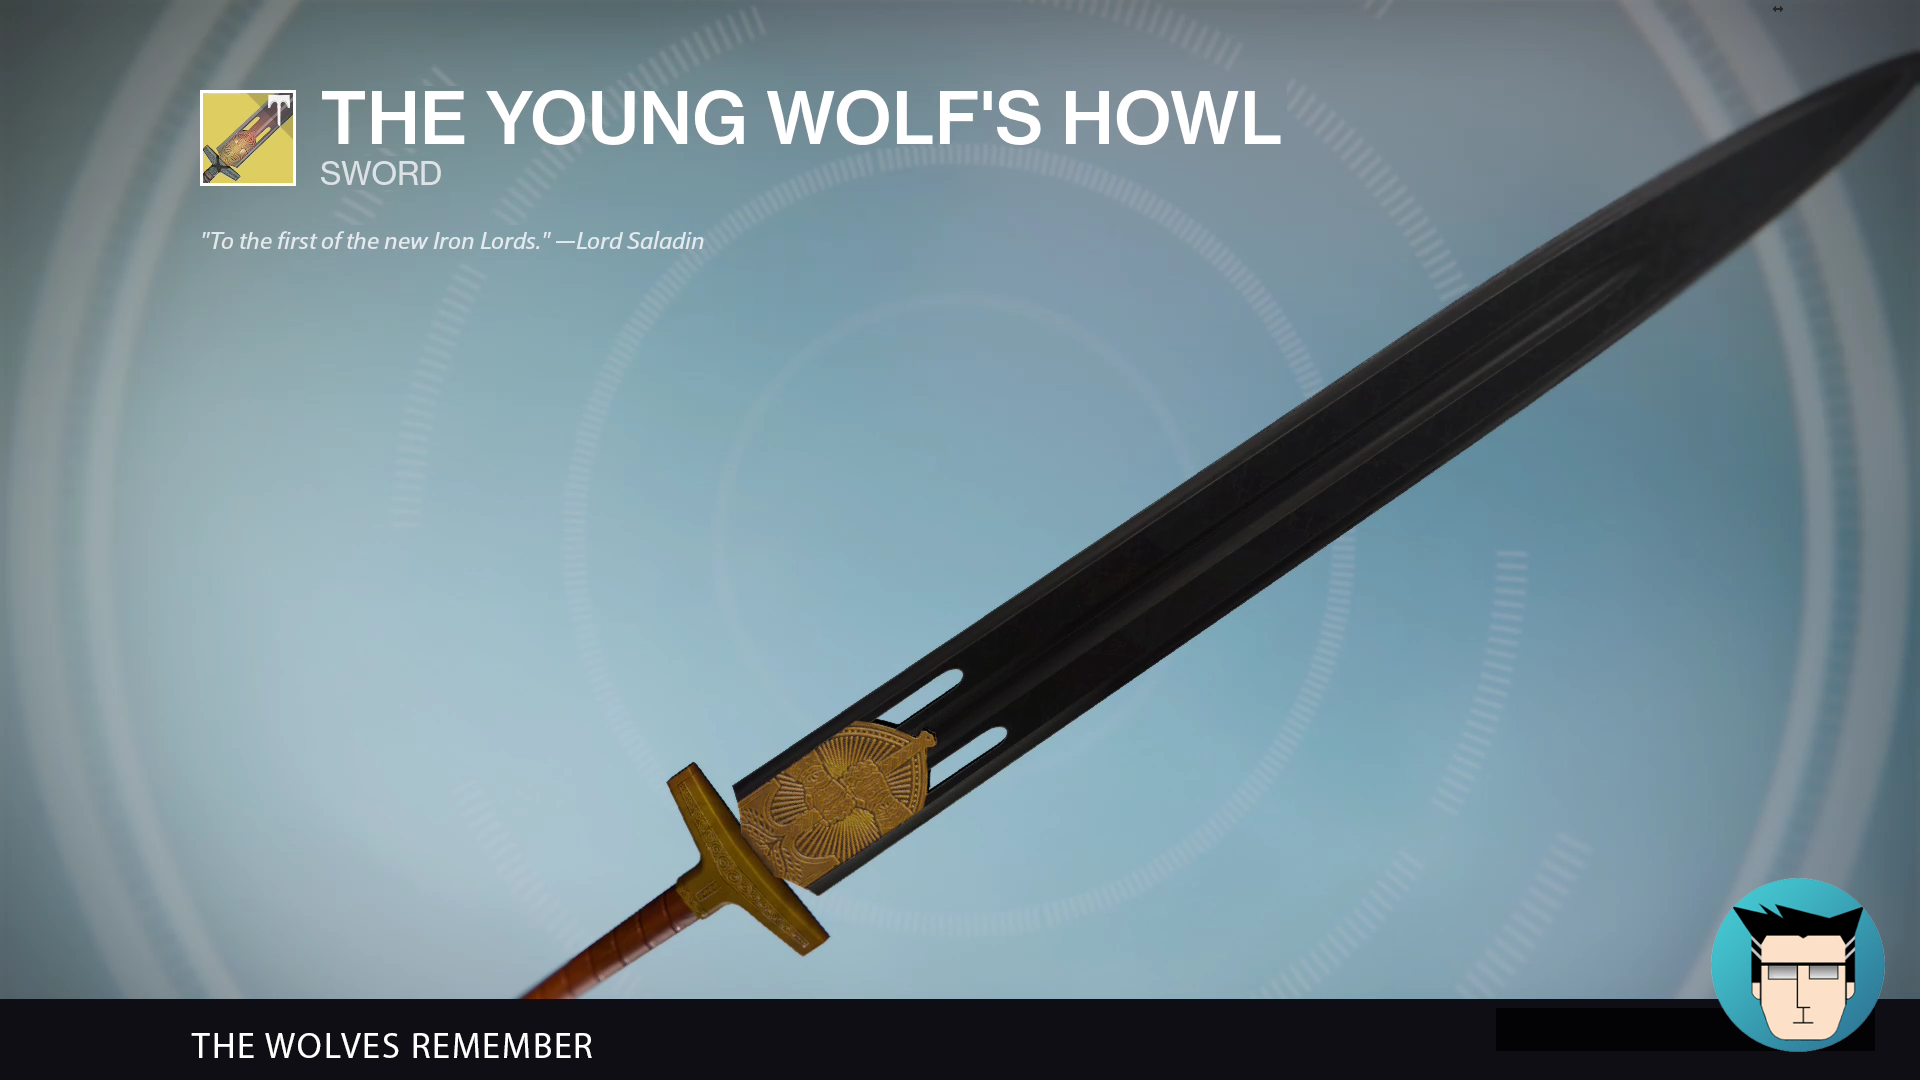 THE YOUNG WOLF'S HOWL | THE WOLVES REMEMBER